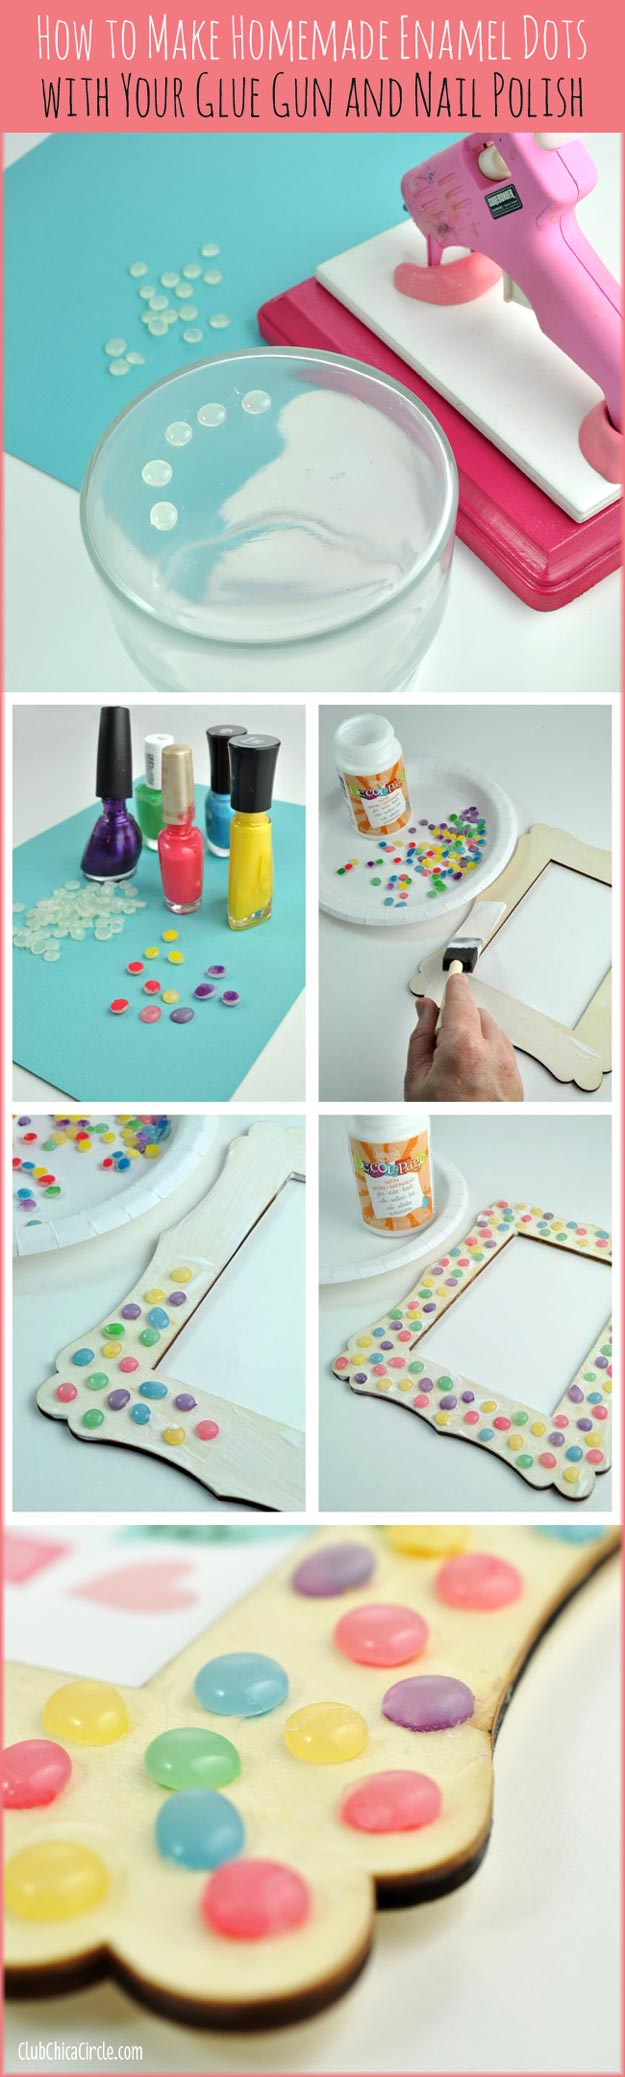 94d444dcc DIY Crafts Using Nail Polish - Fun, Cool, Easy and Cheap Craft Ideas for